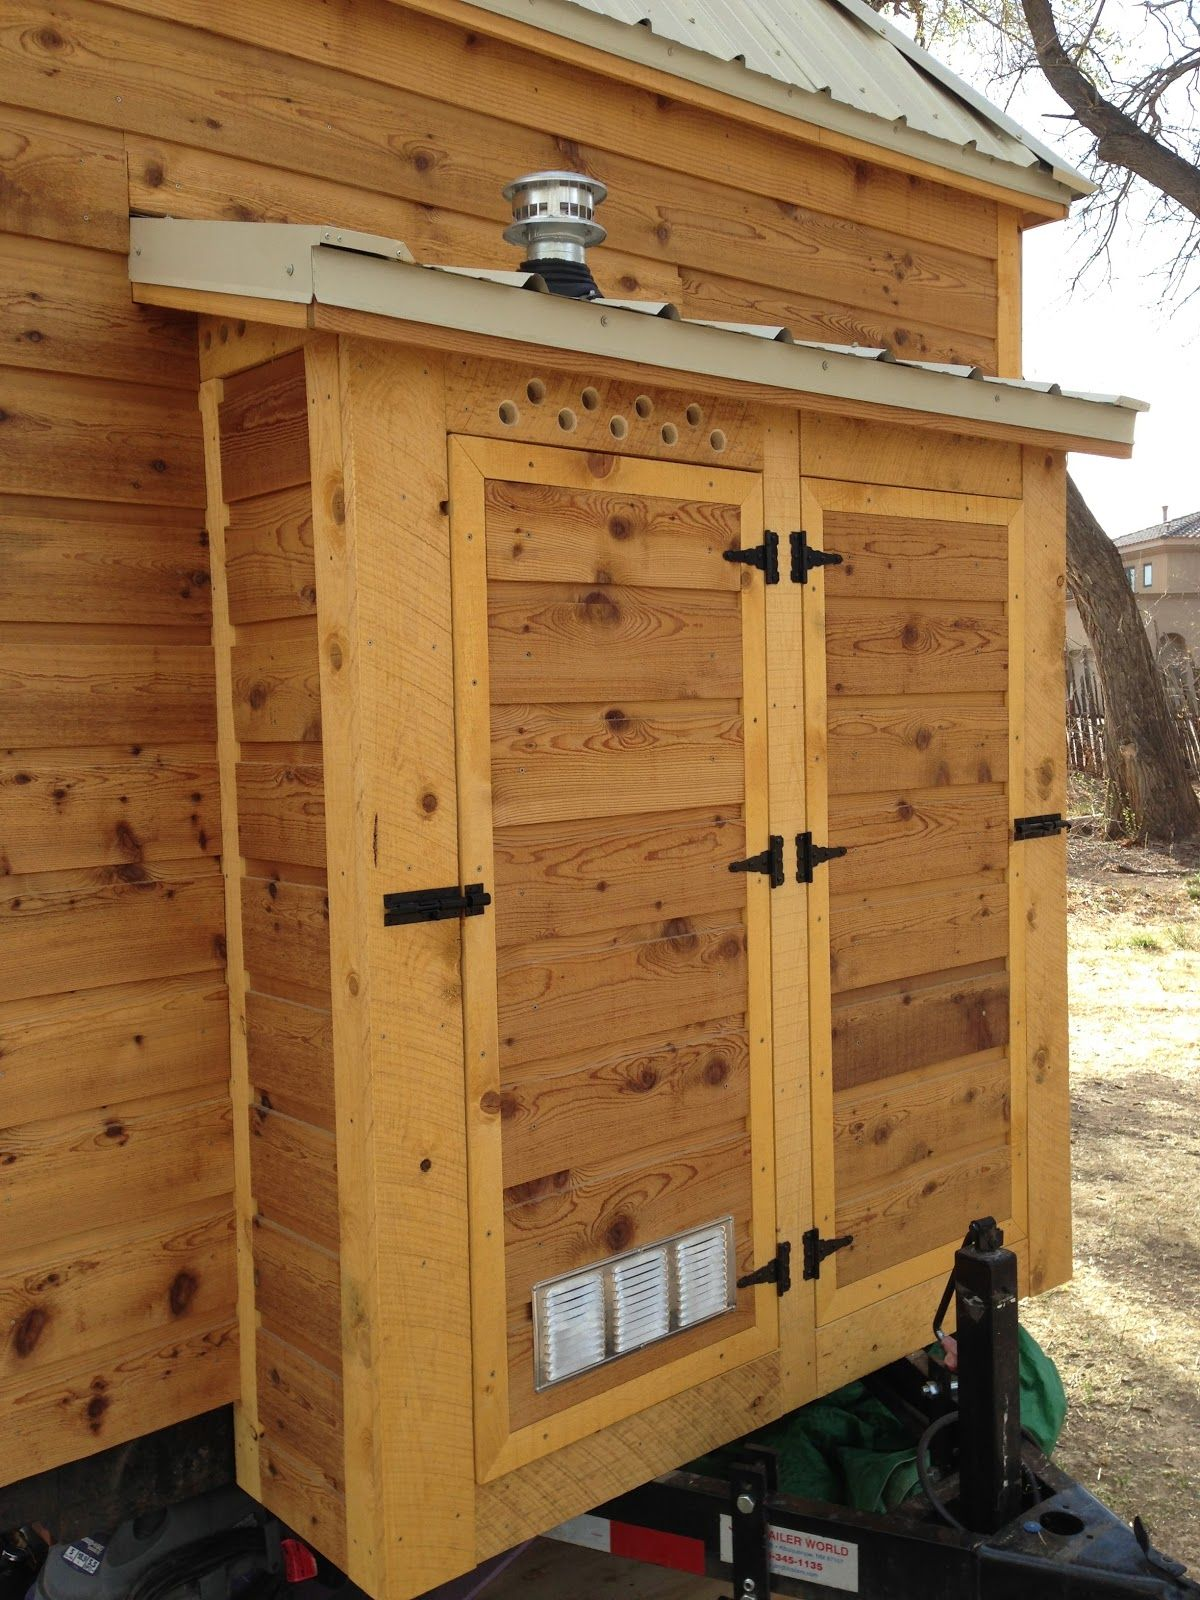 Venting For Outdoor Water Heater Tiny House Tutorials